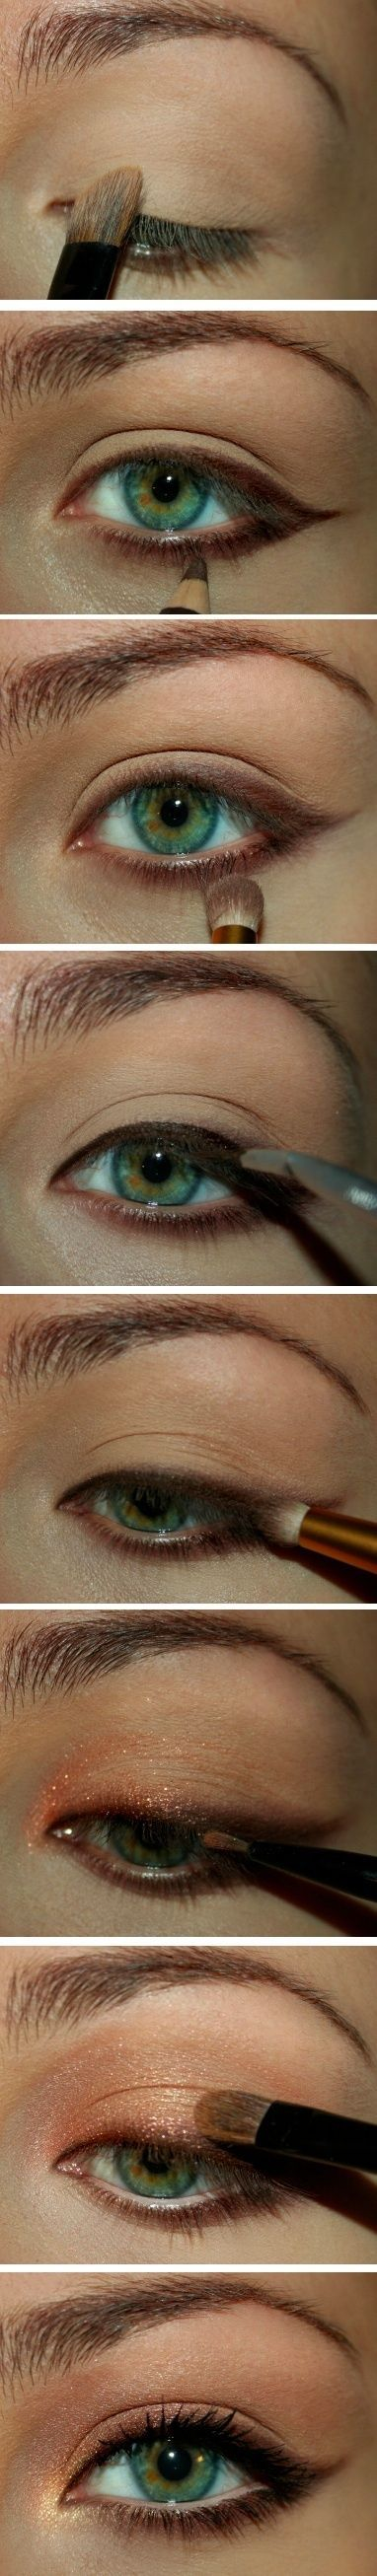 Awesome makeup for green or blue eyes.